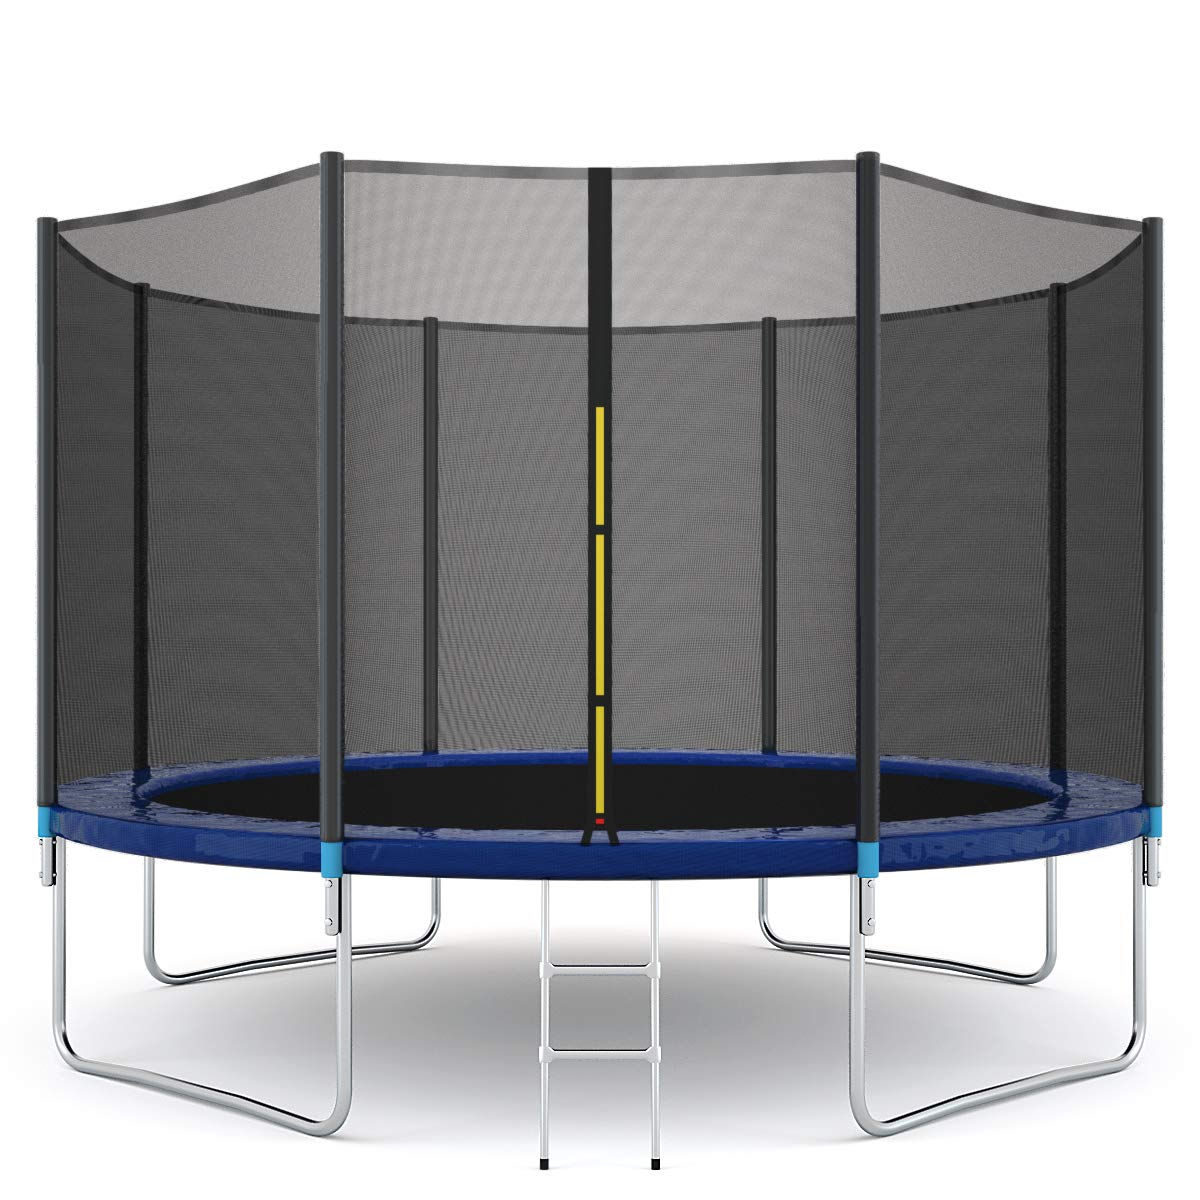 Giantex Outdoor Trampoline Bounce Jumping Trampolines W/Safety Pad Enclosure Net & Ladder,14 FT by Giantex (Image #1)